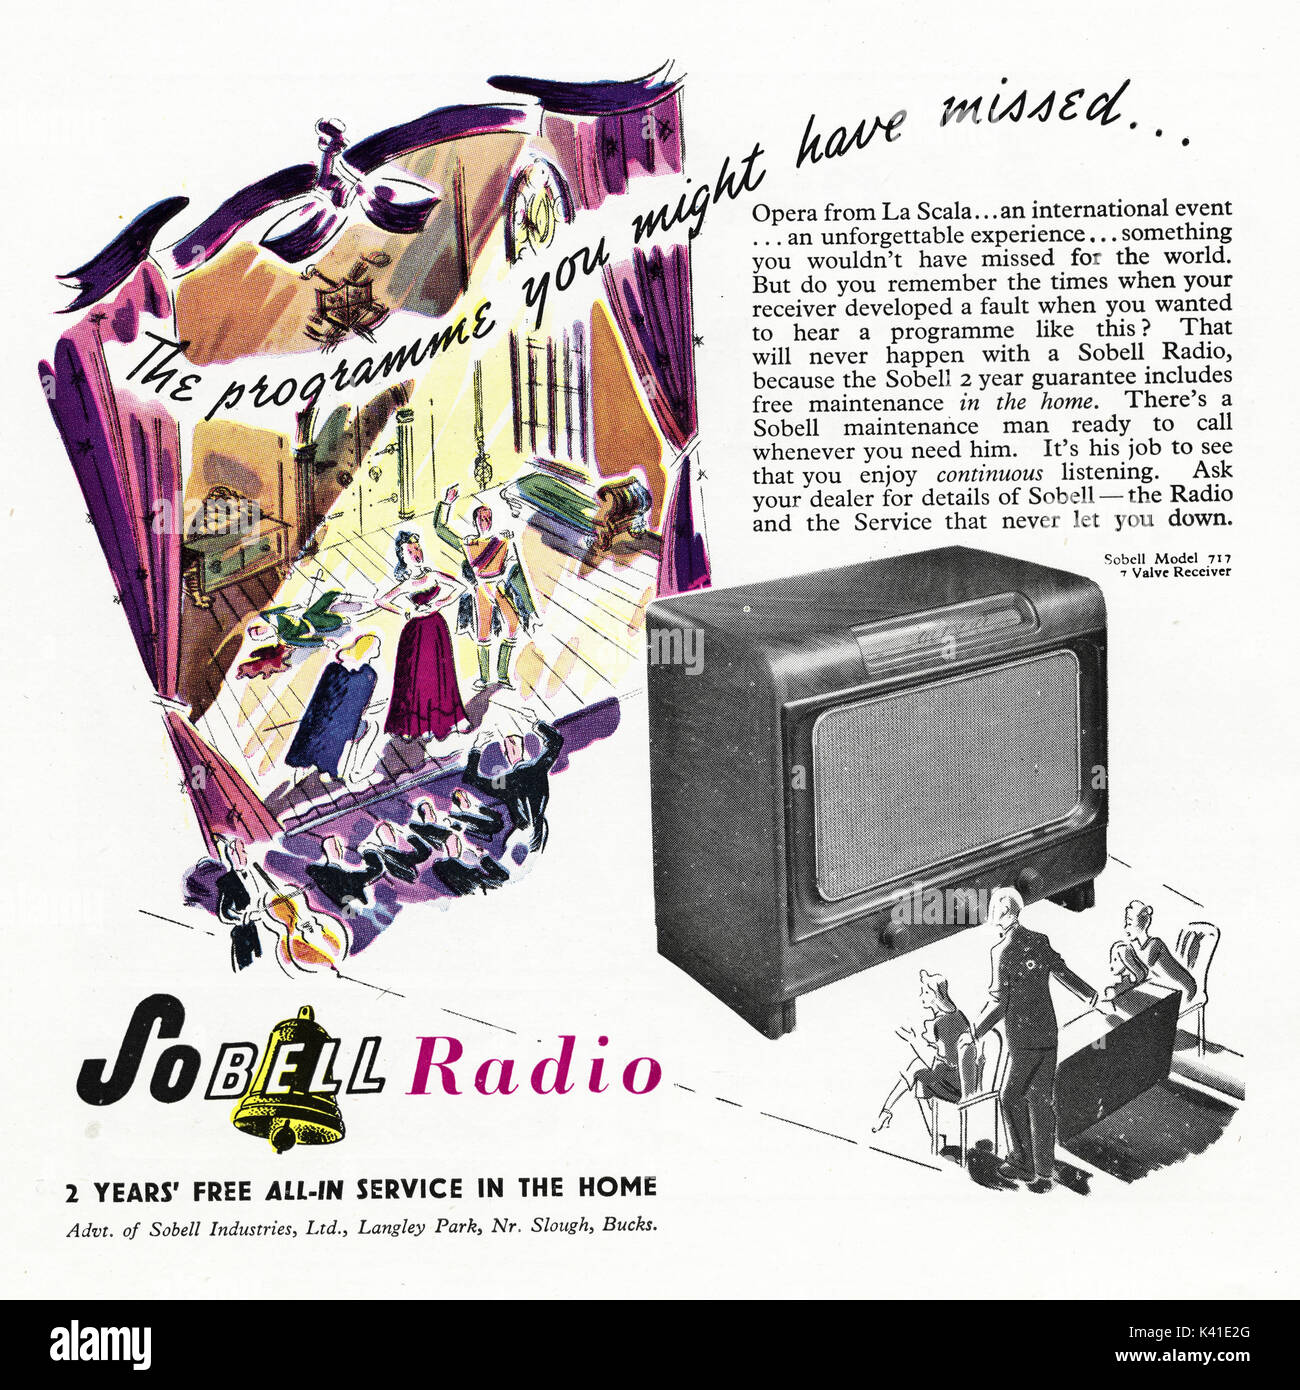 1940s old vintage original advert advertising Sobell Radio in magazine circa 1947 when supplies were still restricted under post-war rationing - Stock Image